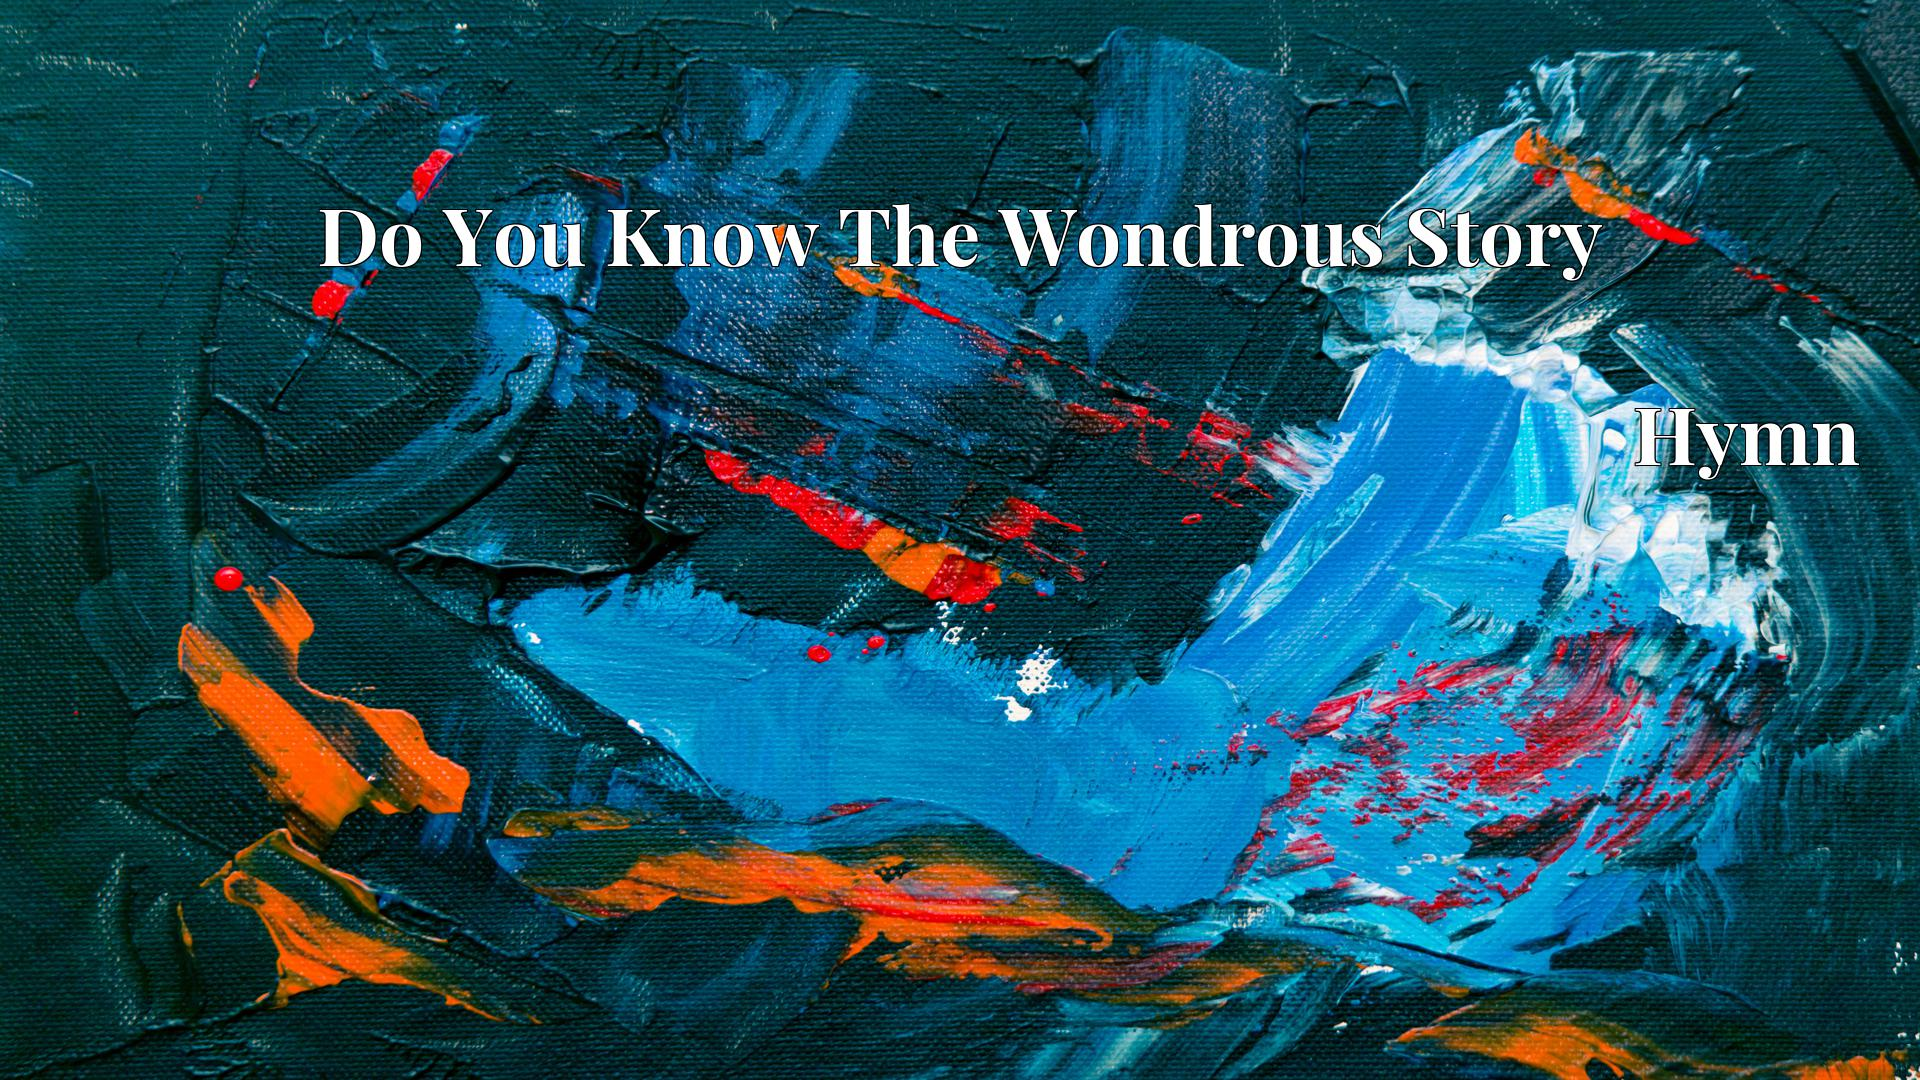 Do You Know The Wondrous Story - Hymn